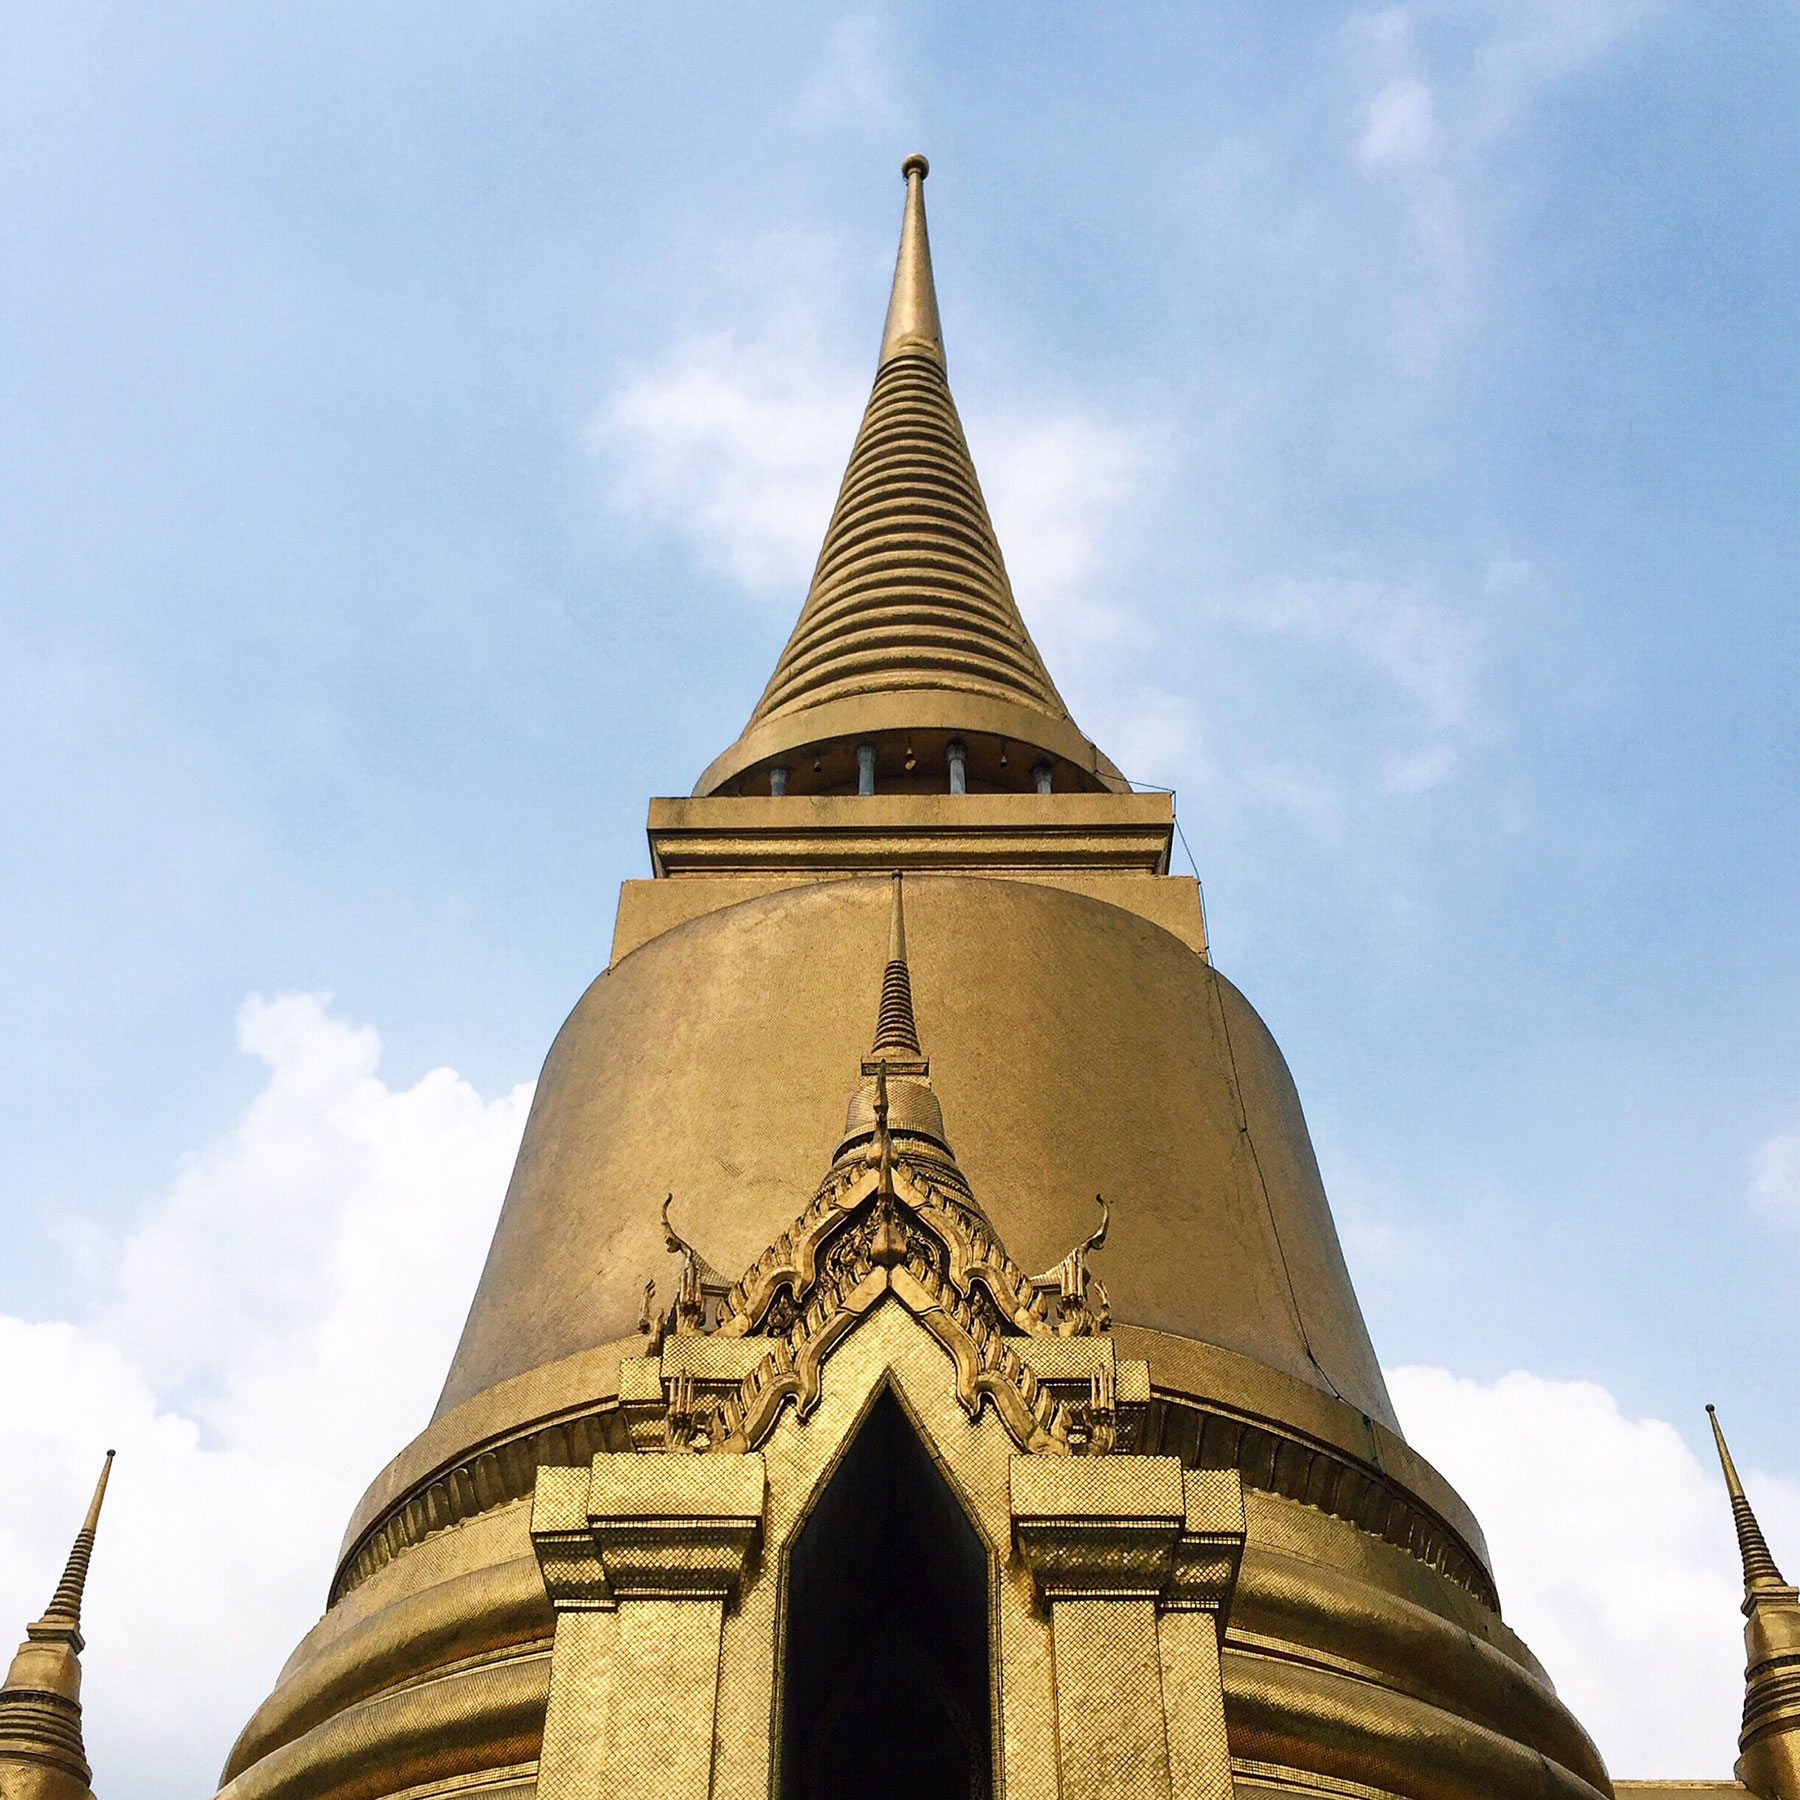 The Phra Sri Rattana Chedi in Sri Lankan style.